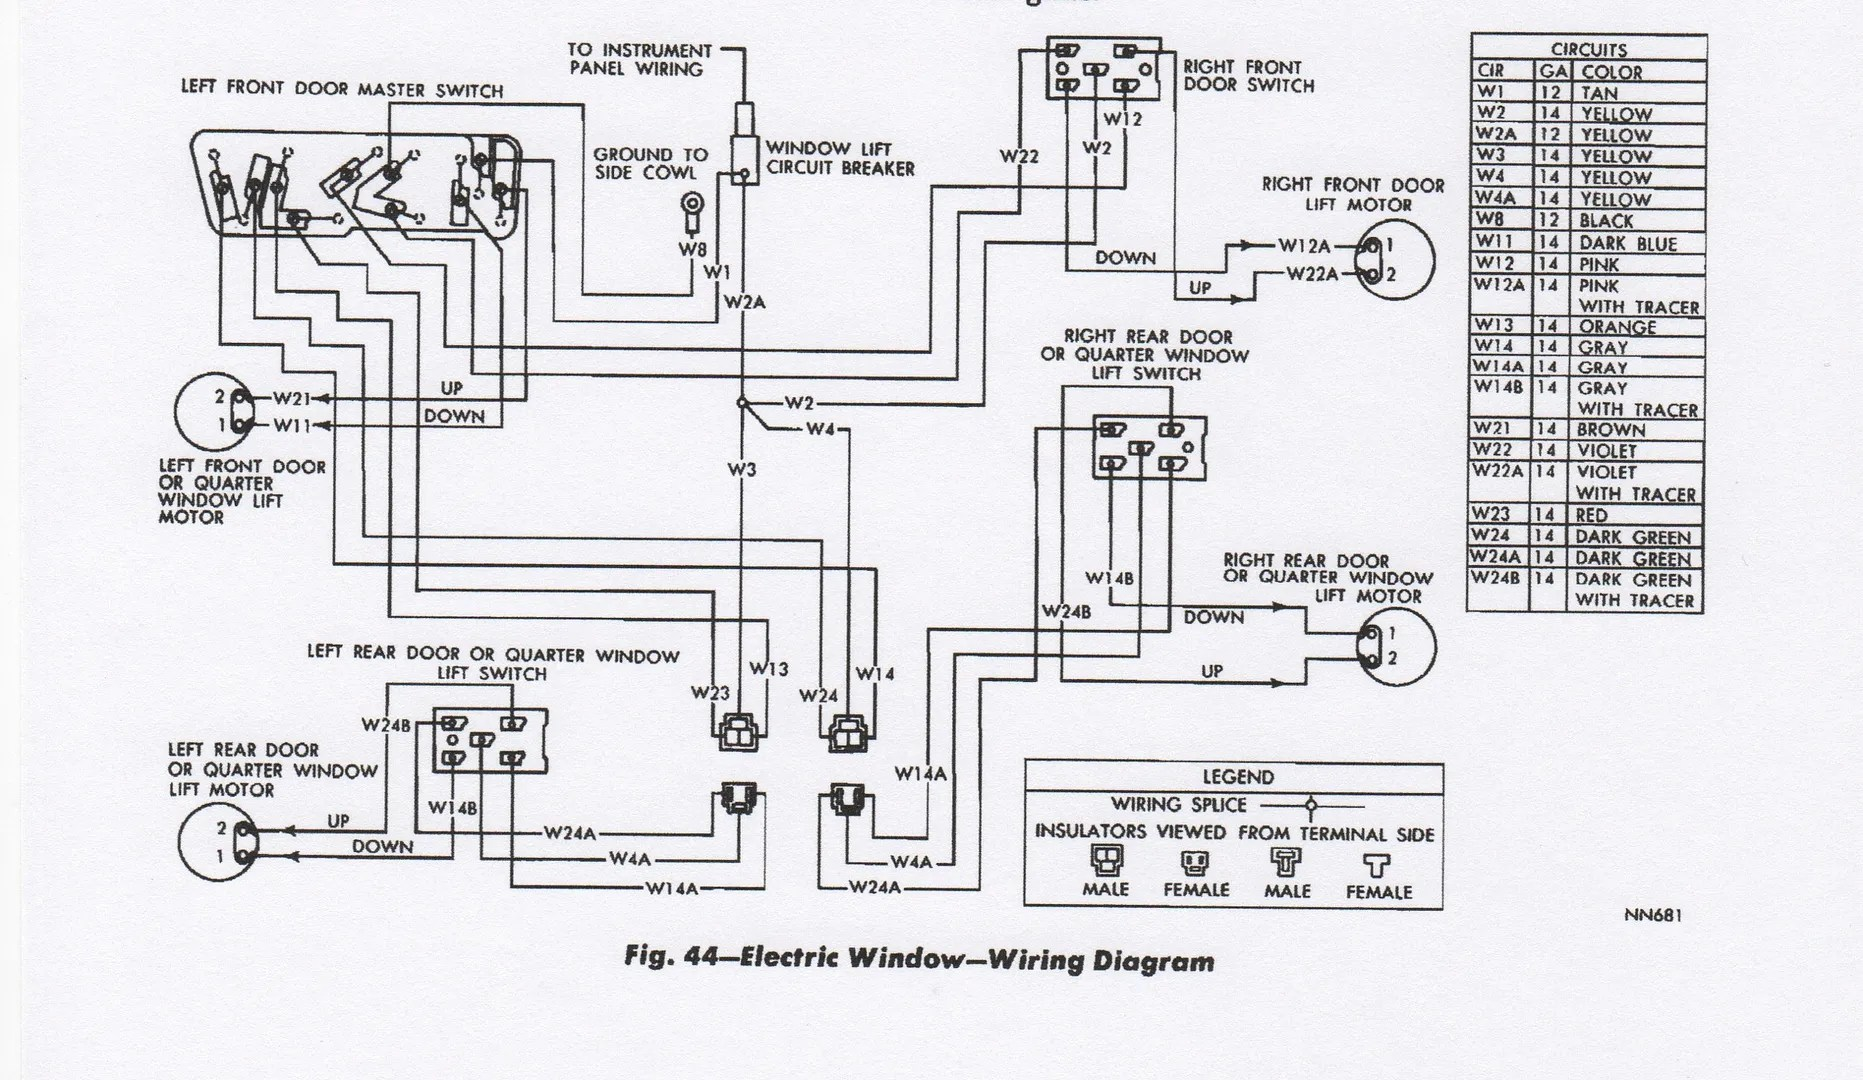 1967 Dodge Coro Wiring Diagram, 1967, Free Engine Image